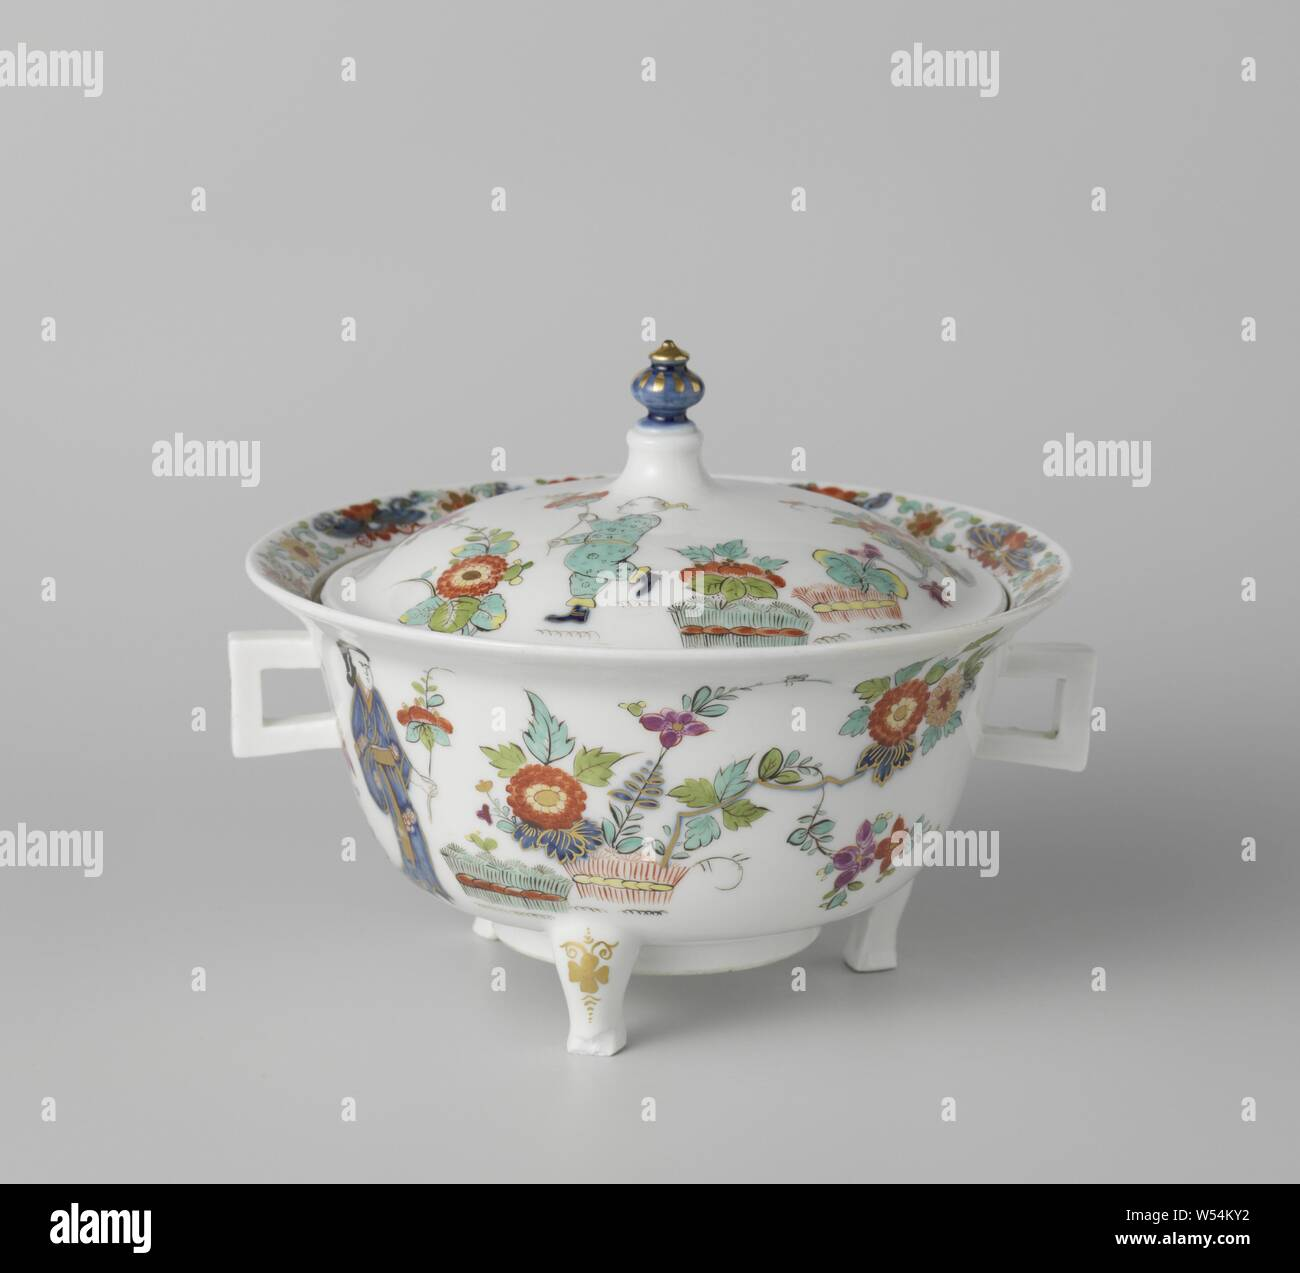 Terrine, multicolored painted with a decor after Japanese example, Terrine of painted porcelain. The round terrine stands on three legs and has two square ears. The lid has a gold-plated button. The terrine is painted on both sides with a Chinese lady with a flower branch in hand and with bound hedges and plants. The terrine is not marked., Meissener Porzellan Manufaktur, Meissen, c. 1725 - c. 1730, porcelain (material), h 9.5 cm w 18.2 cm × d 17.5 cm Stock Photo